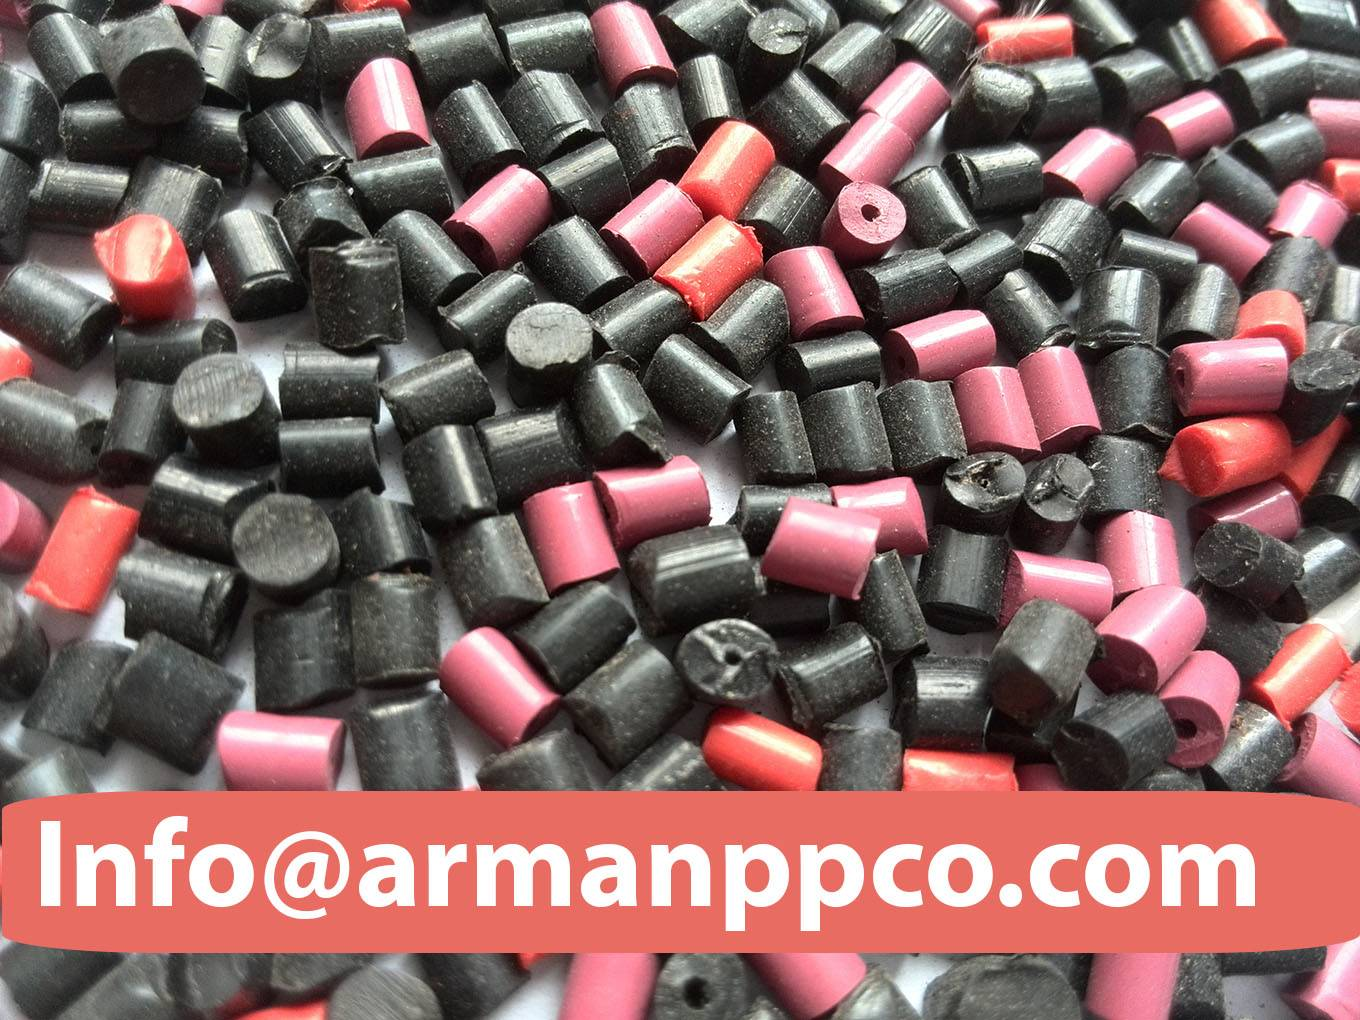 manufacturer of all color masterbatches